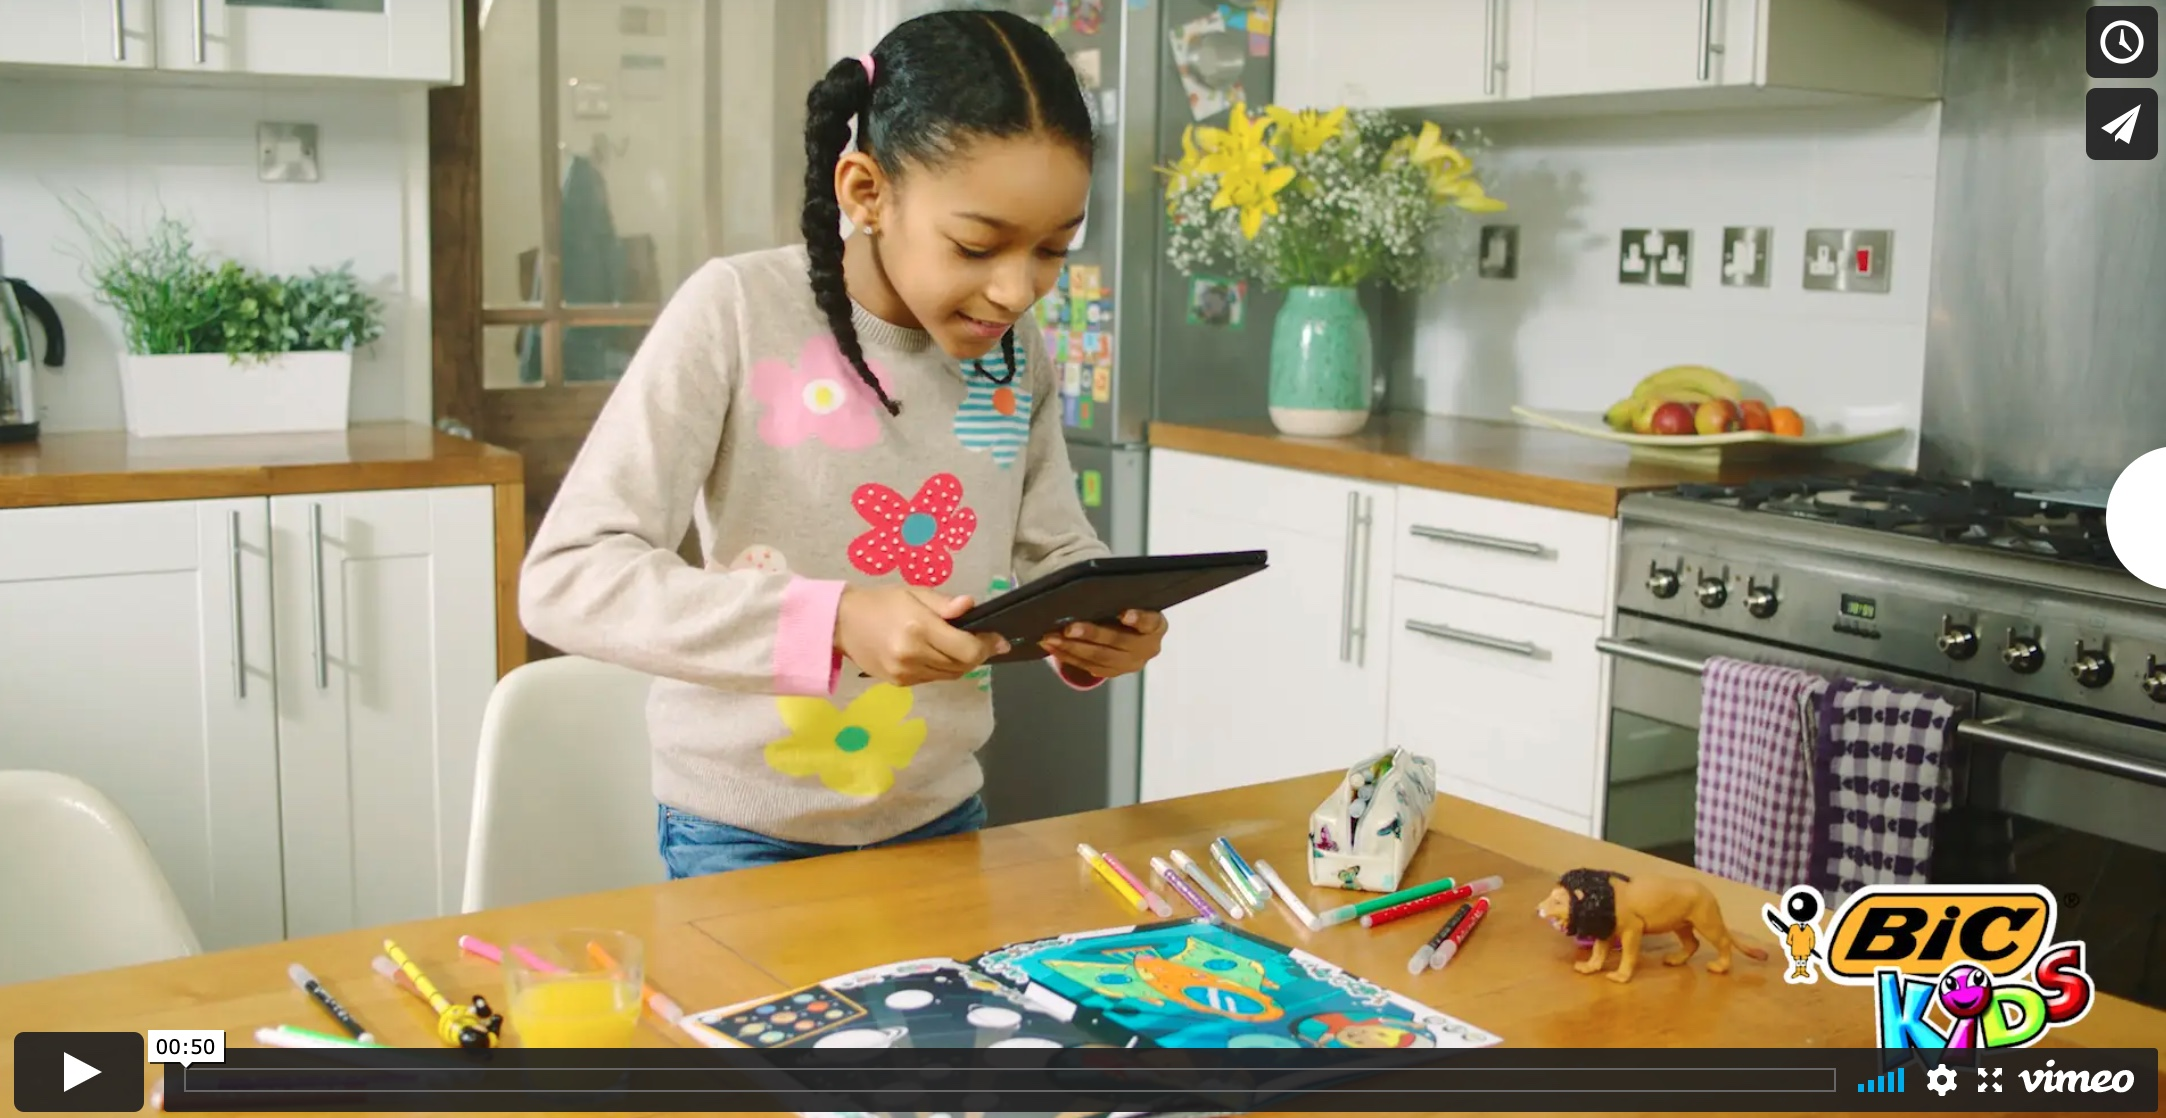 bic augmented reality image